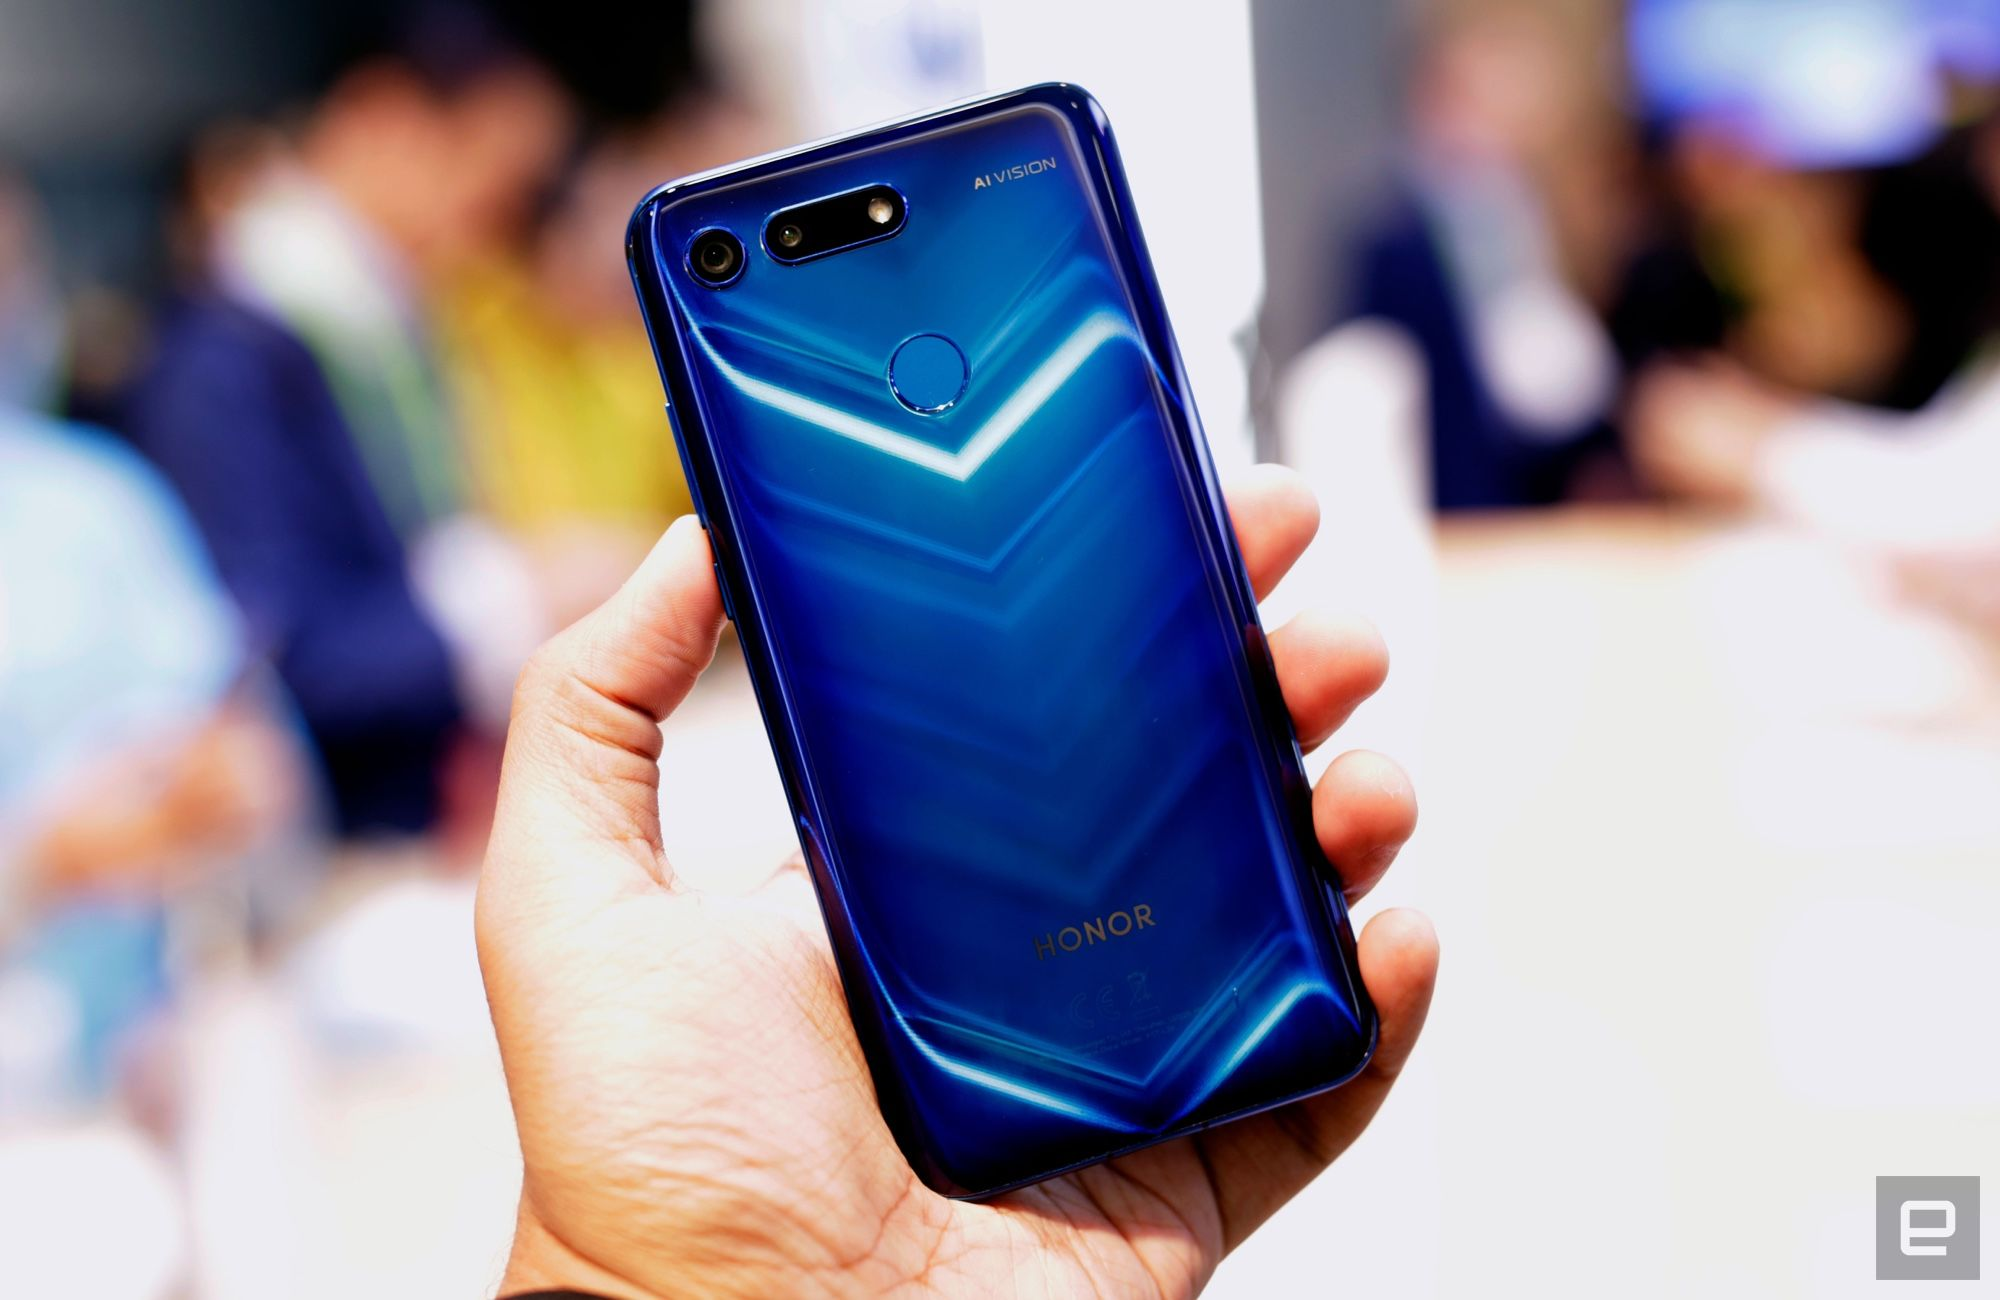 Honor View 20 Full Details, Honor View 20 Camera Test, Honor View 20 Display Size, Honor View 20 Price, Honor View 20 Testing, Honor View 20 Cam, Honor View 20